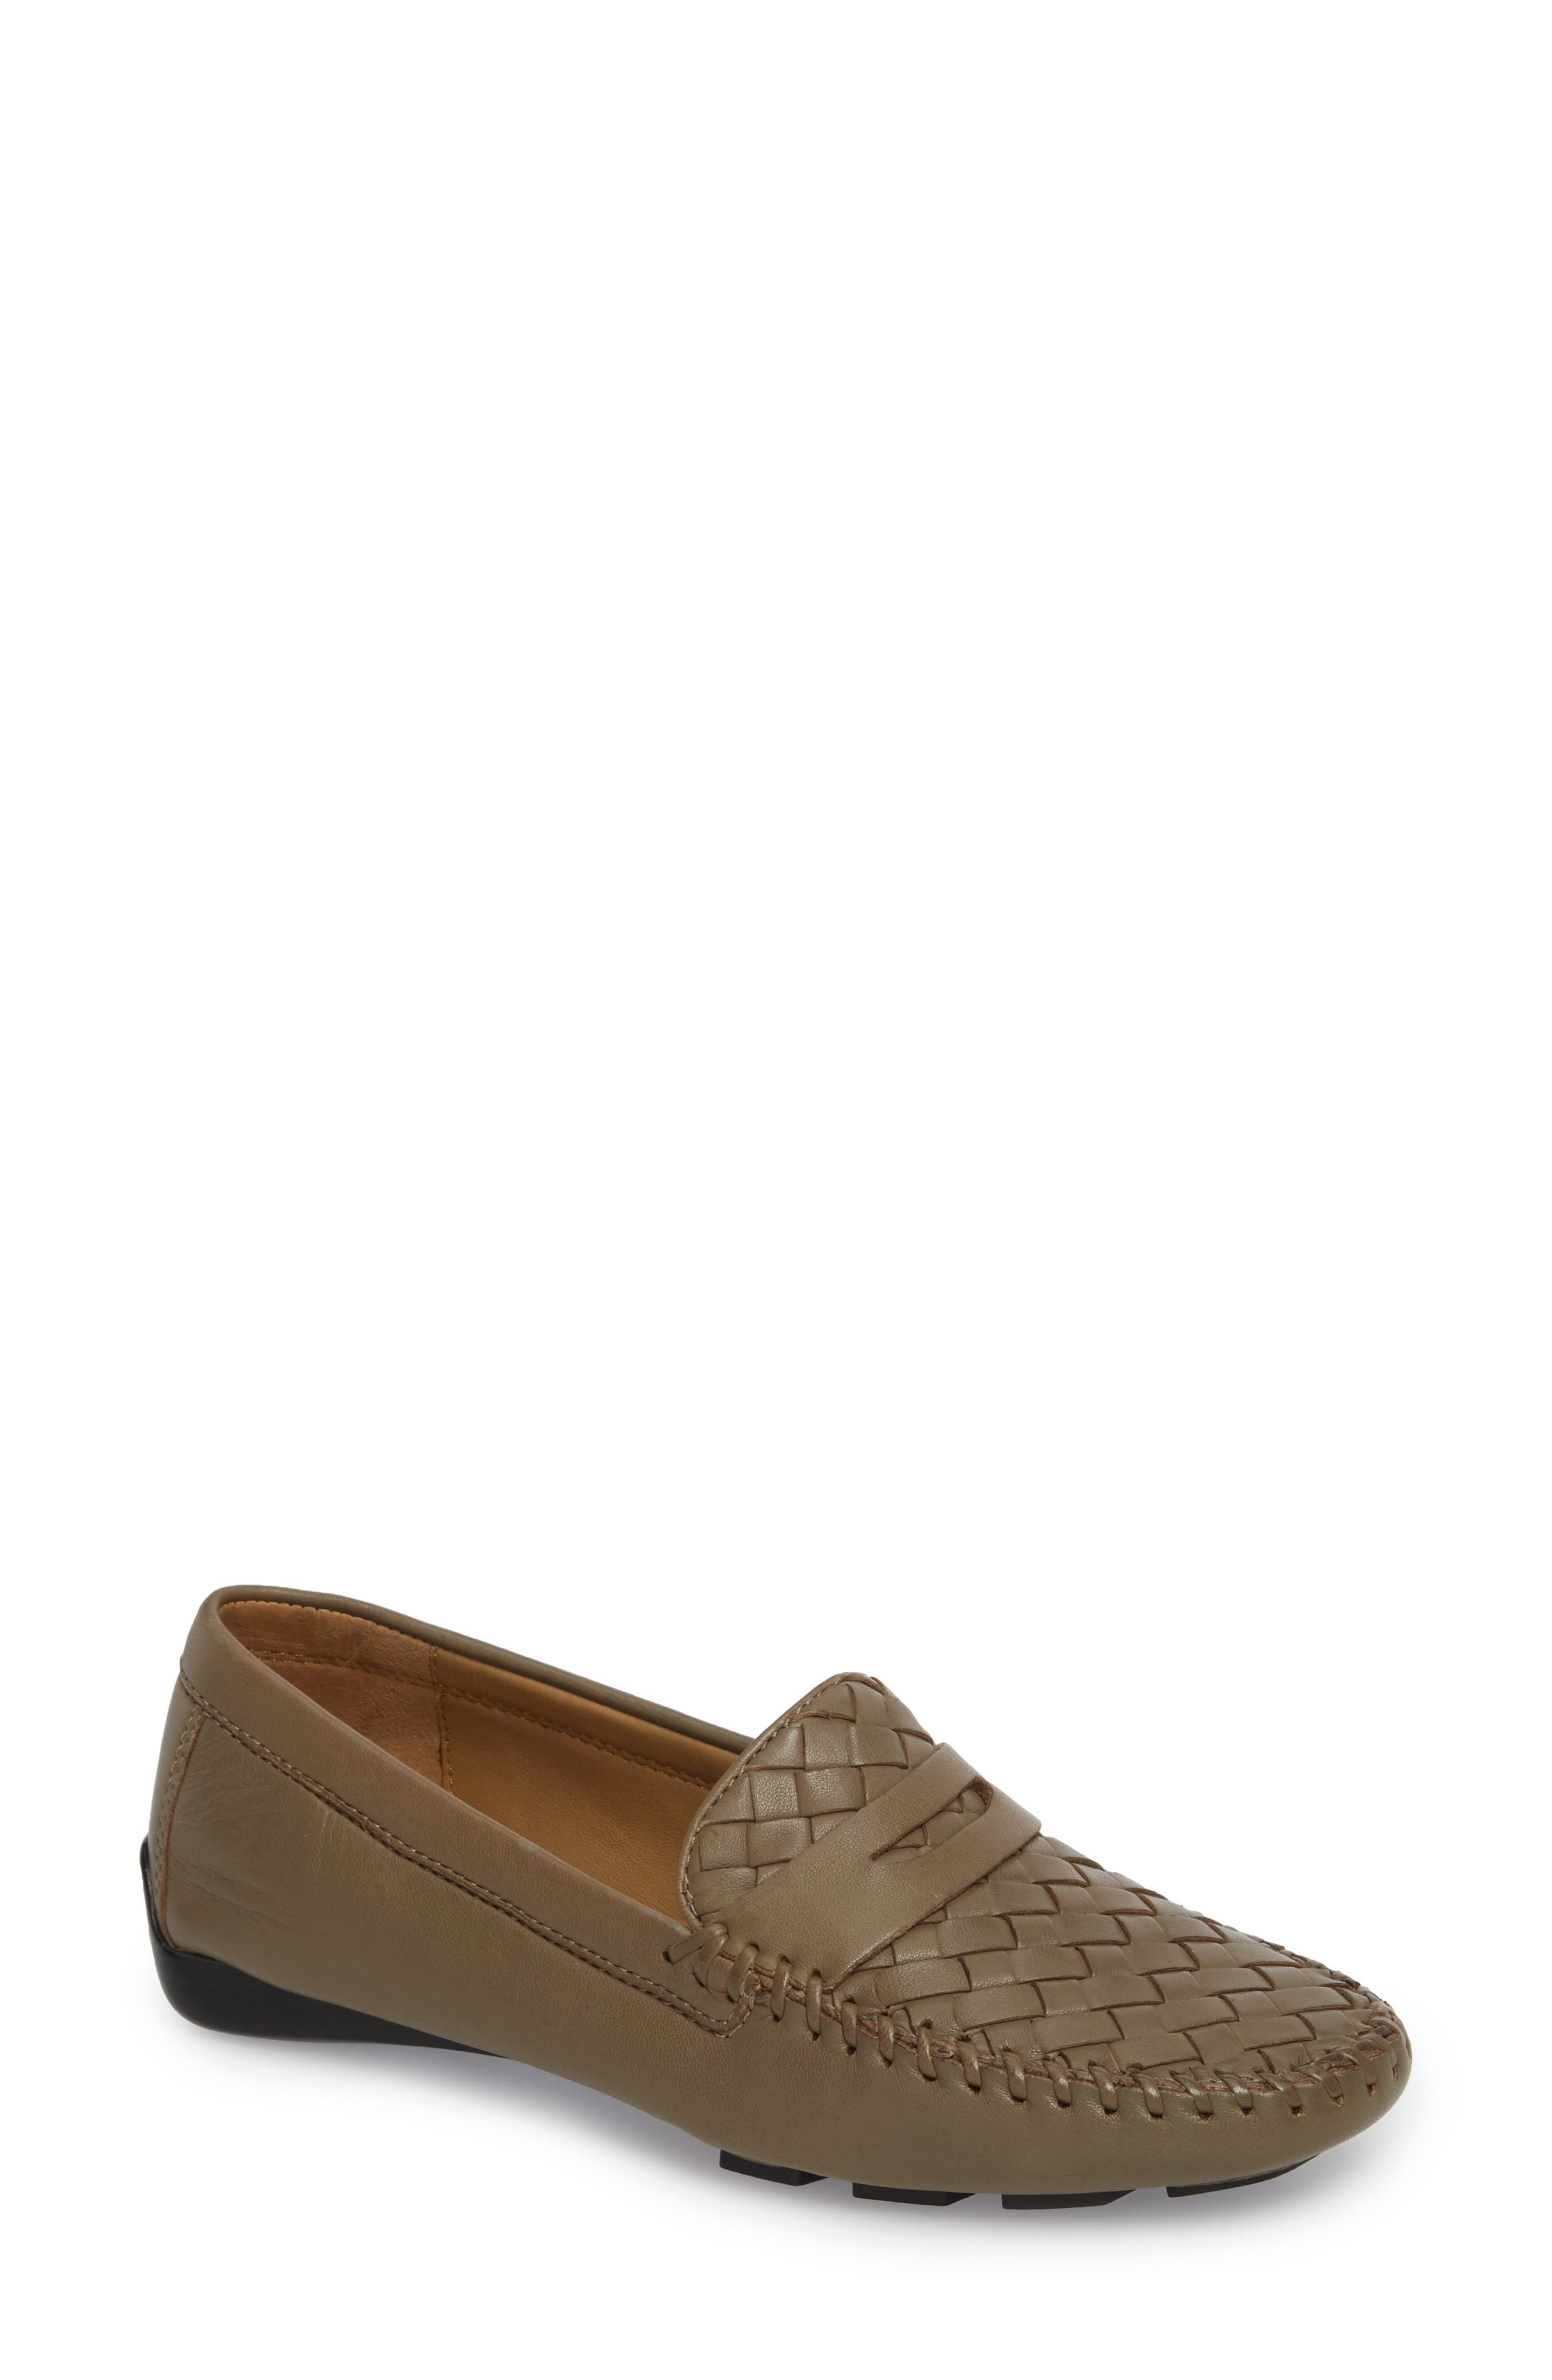 'Petra' Driving Shoe,                             Main thumbnail 1, color,                             UMBER LEATHER